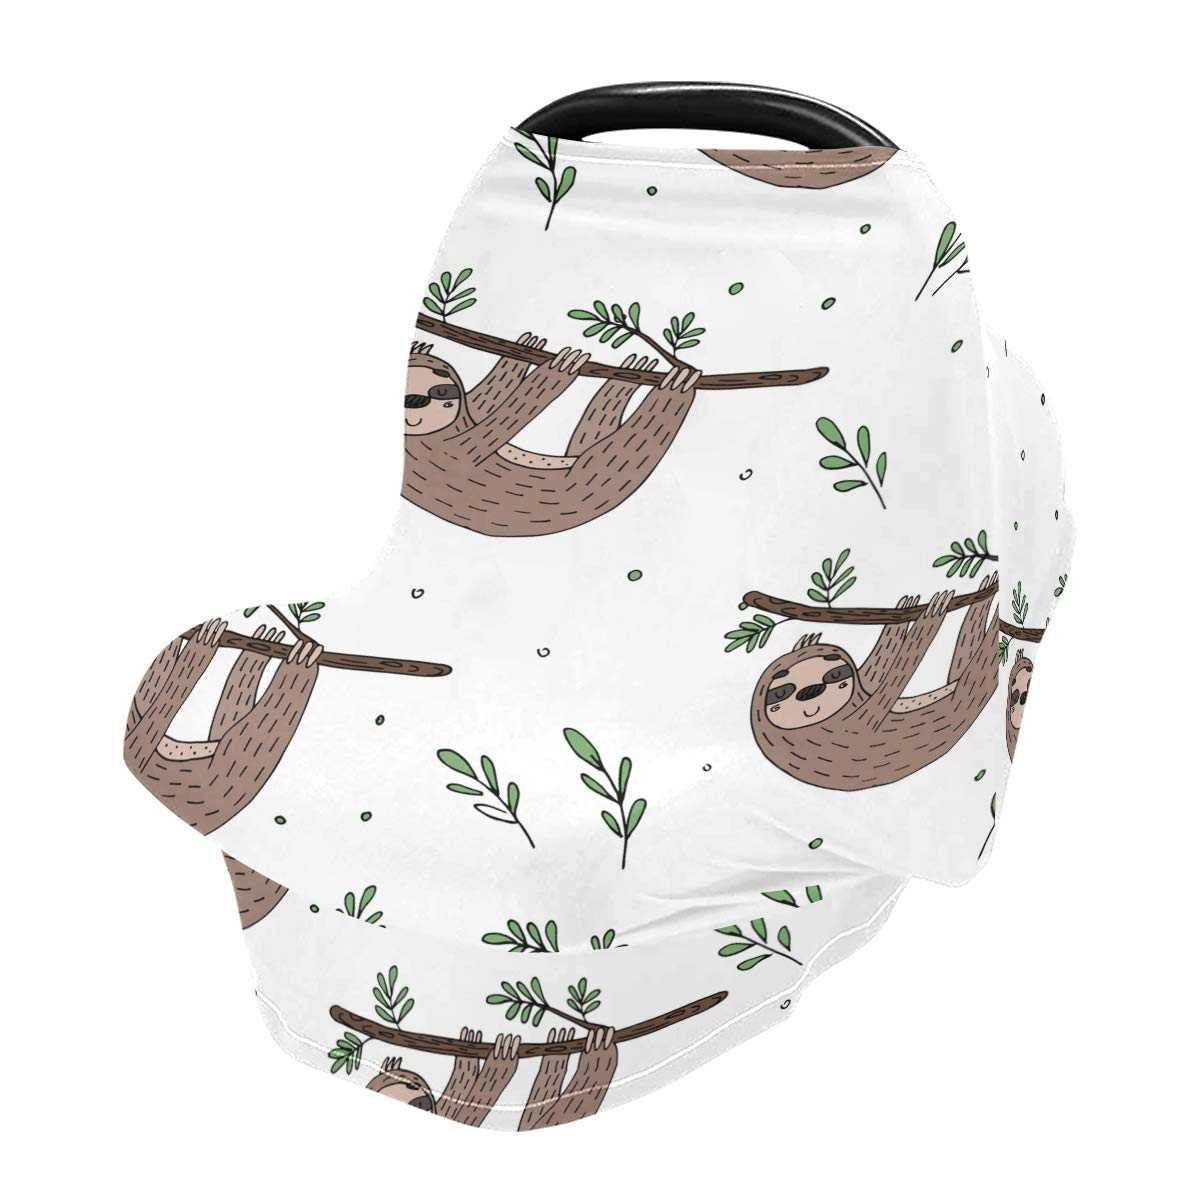 Nursing Cover Breastfeeding Scarf, Cute Doodle Sloth Car Seat Covers for Babies Infant, Stroller Cover, Carseat Canopy for Boys Girls